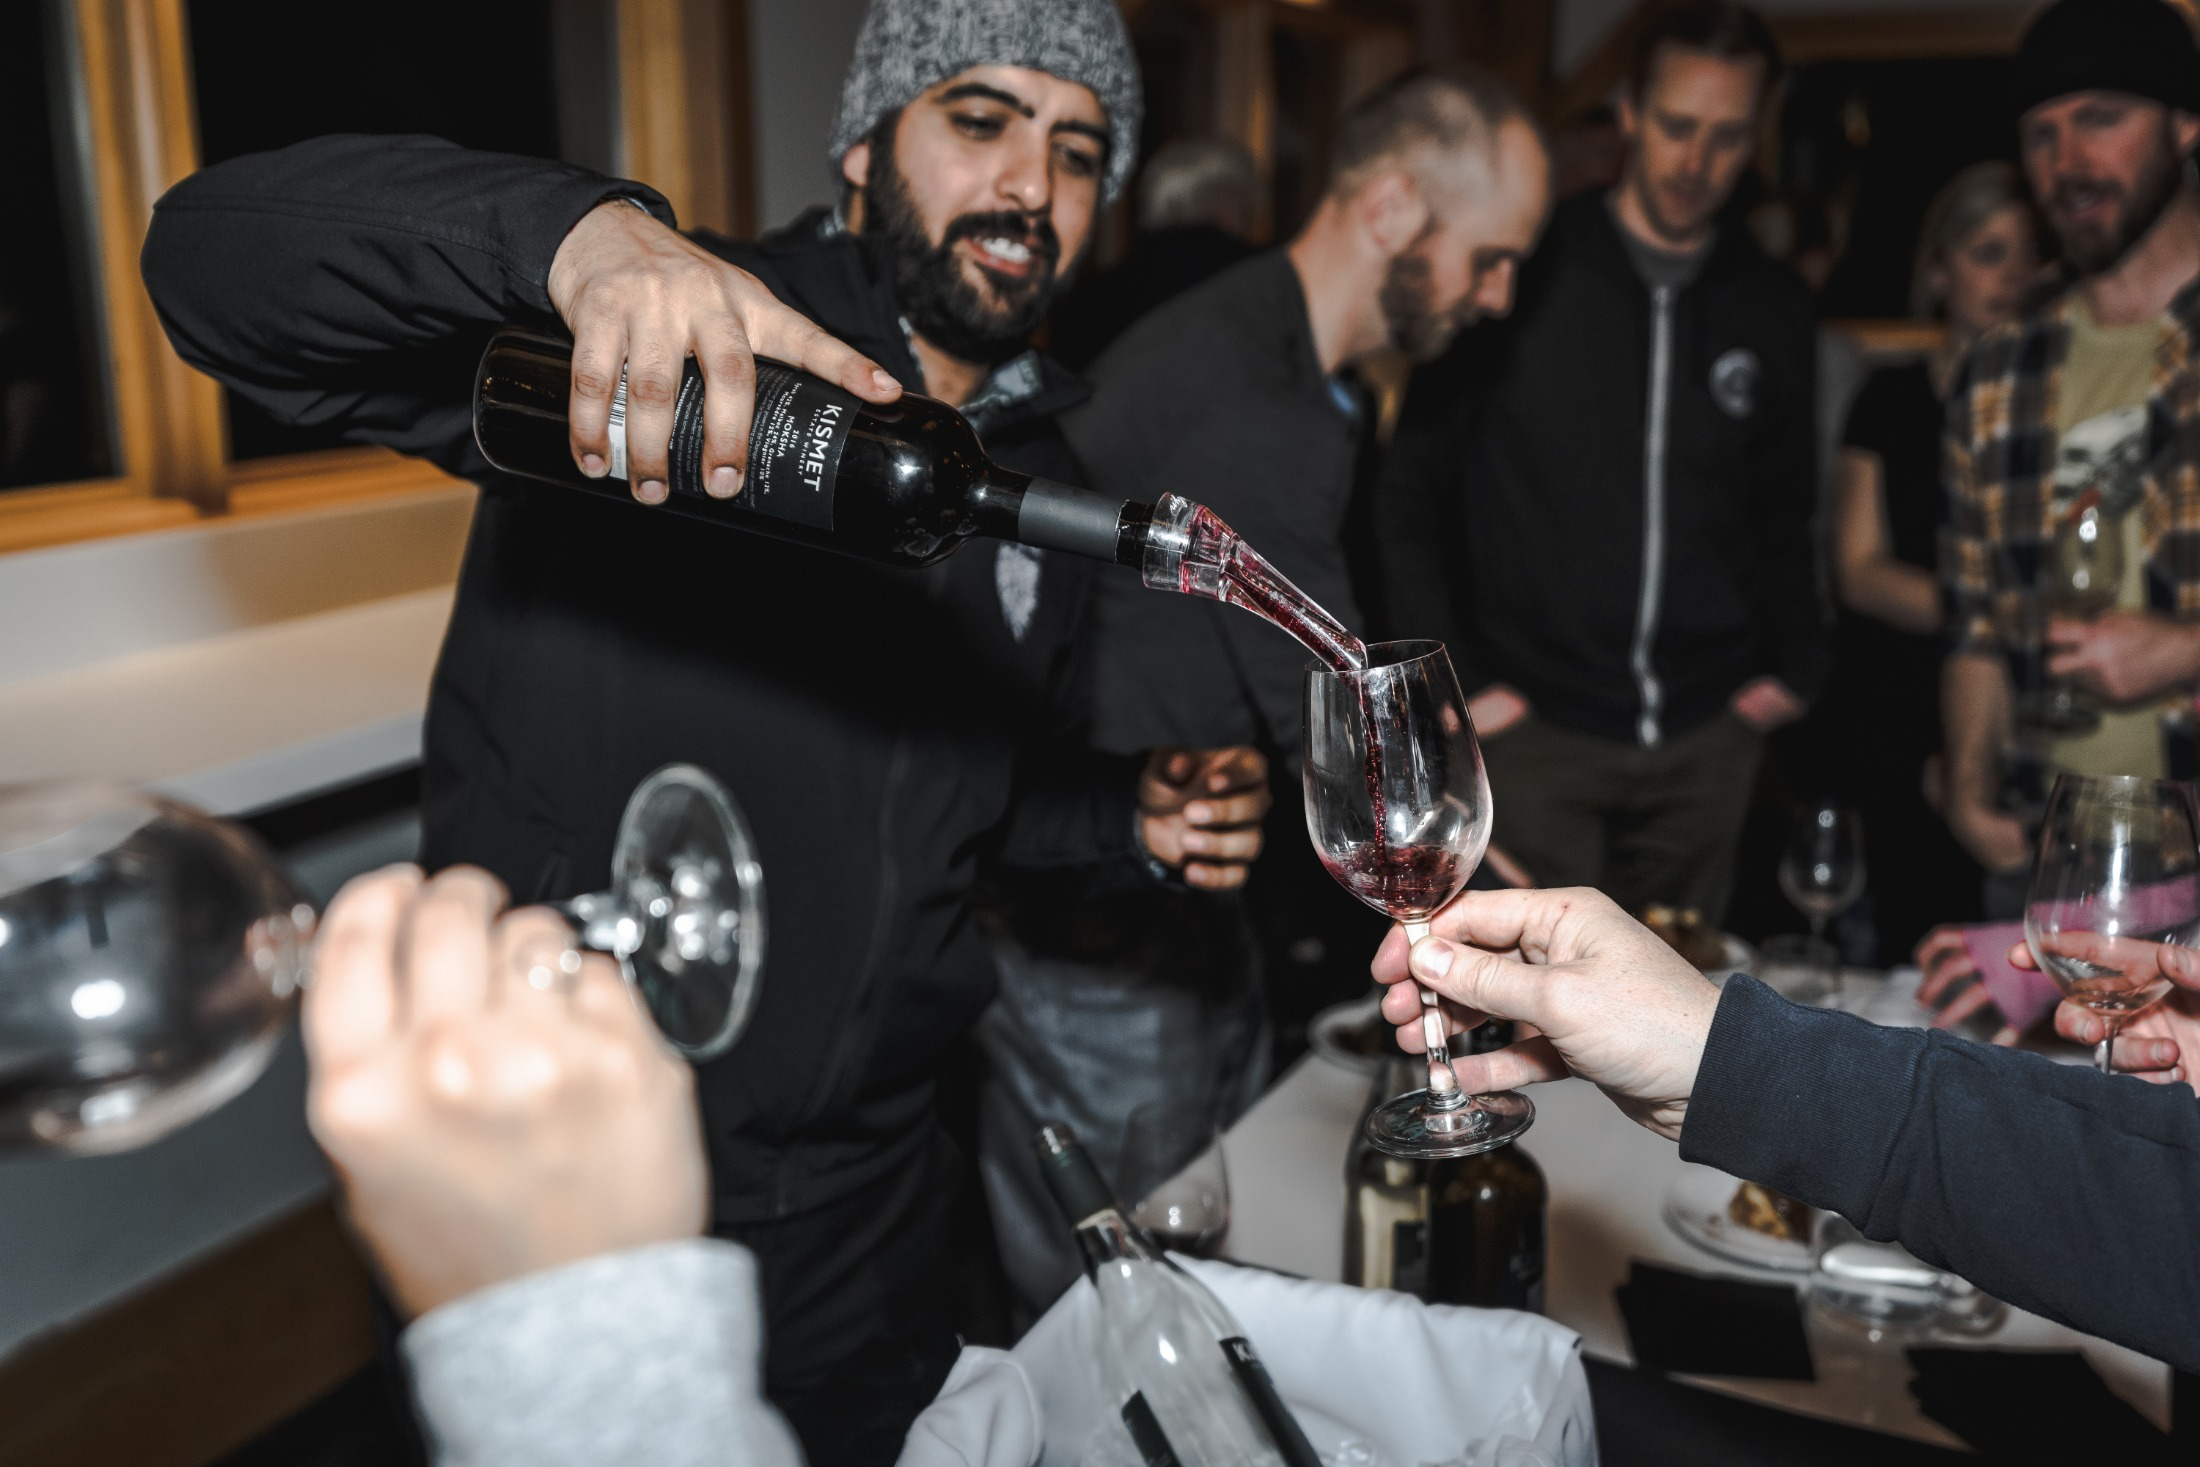 Dapinder Gill pours Moksha wine from Kismet. Photo by Kyle James/Oliver Osoyoos Wine Country.